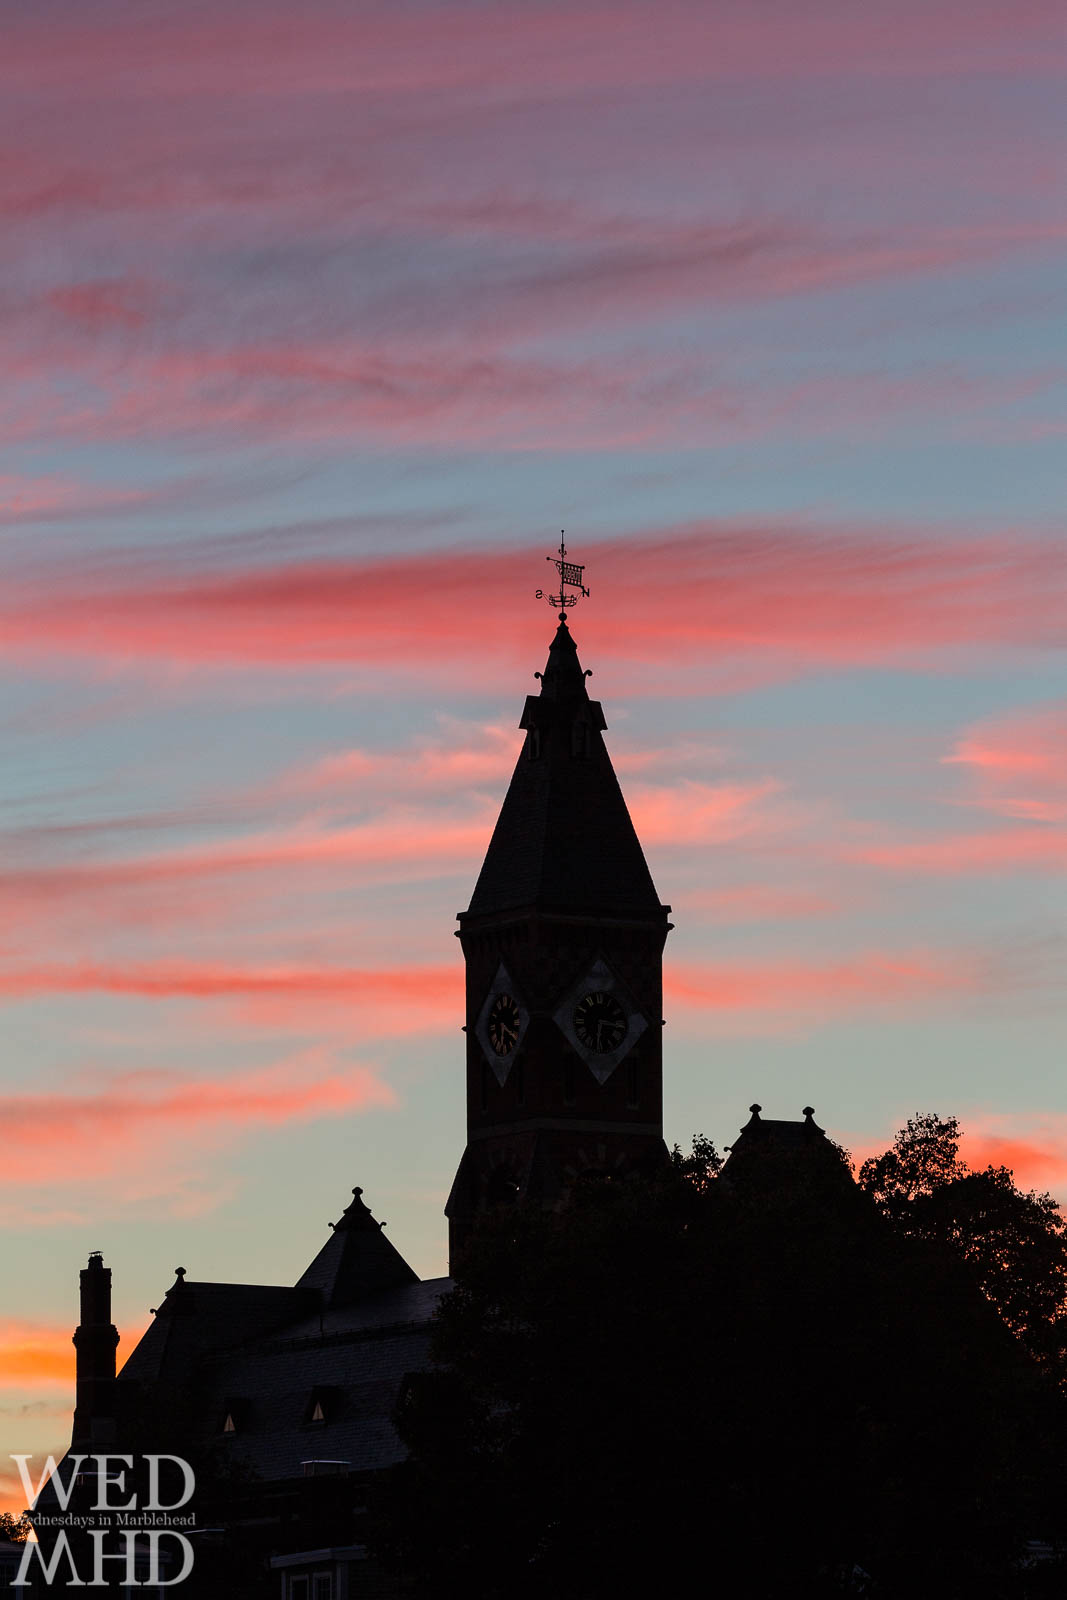 Abbot Hall captured in this sunset silhouette with wispy clouds reflecting the colors of sunset